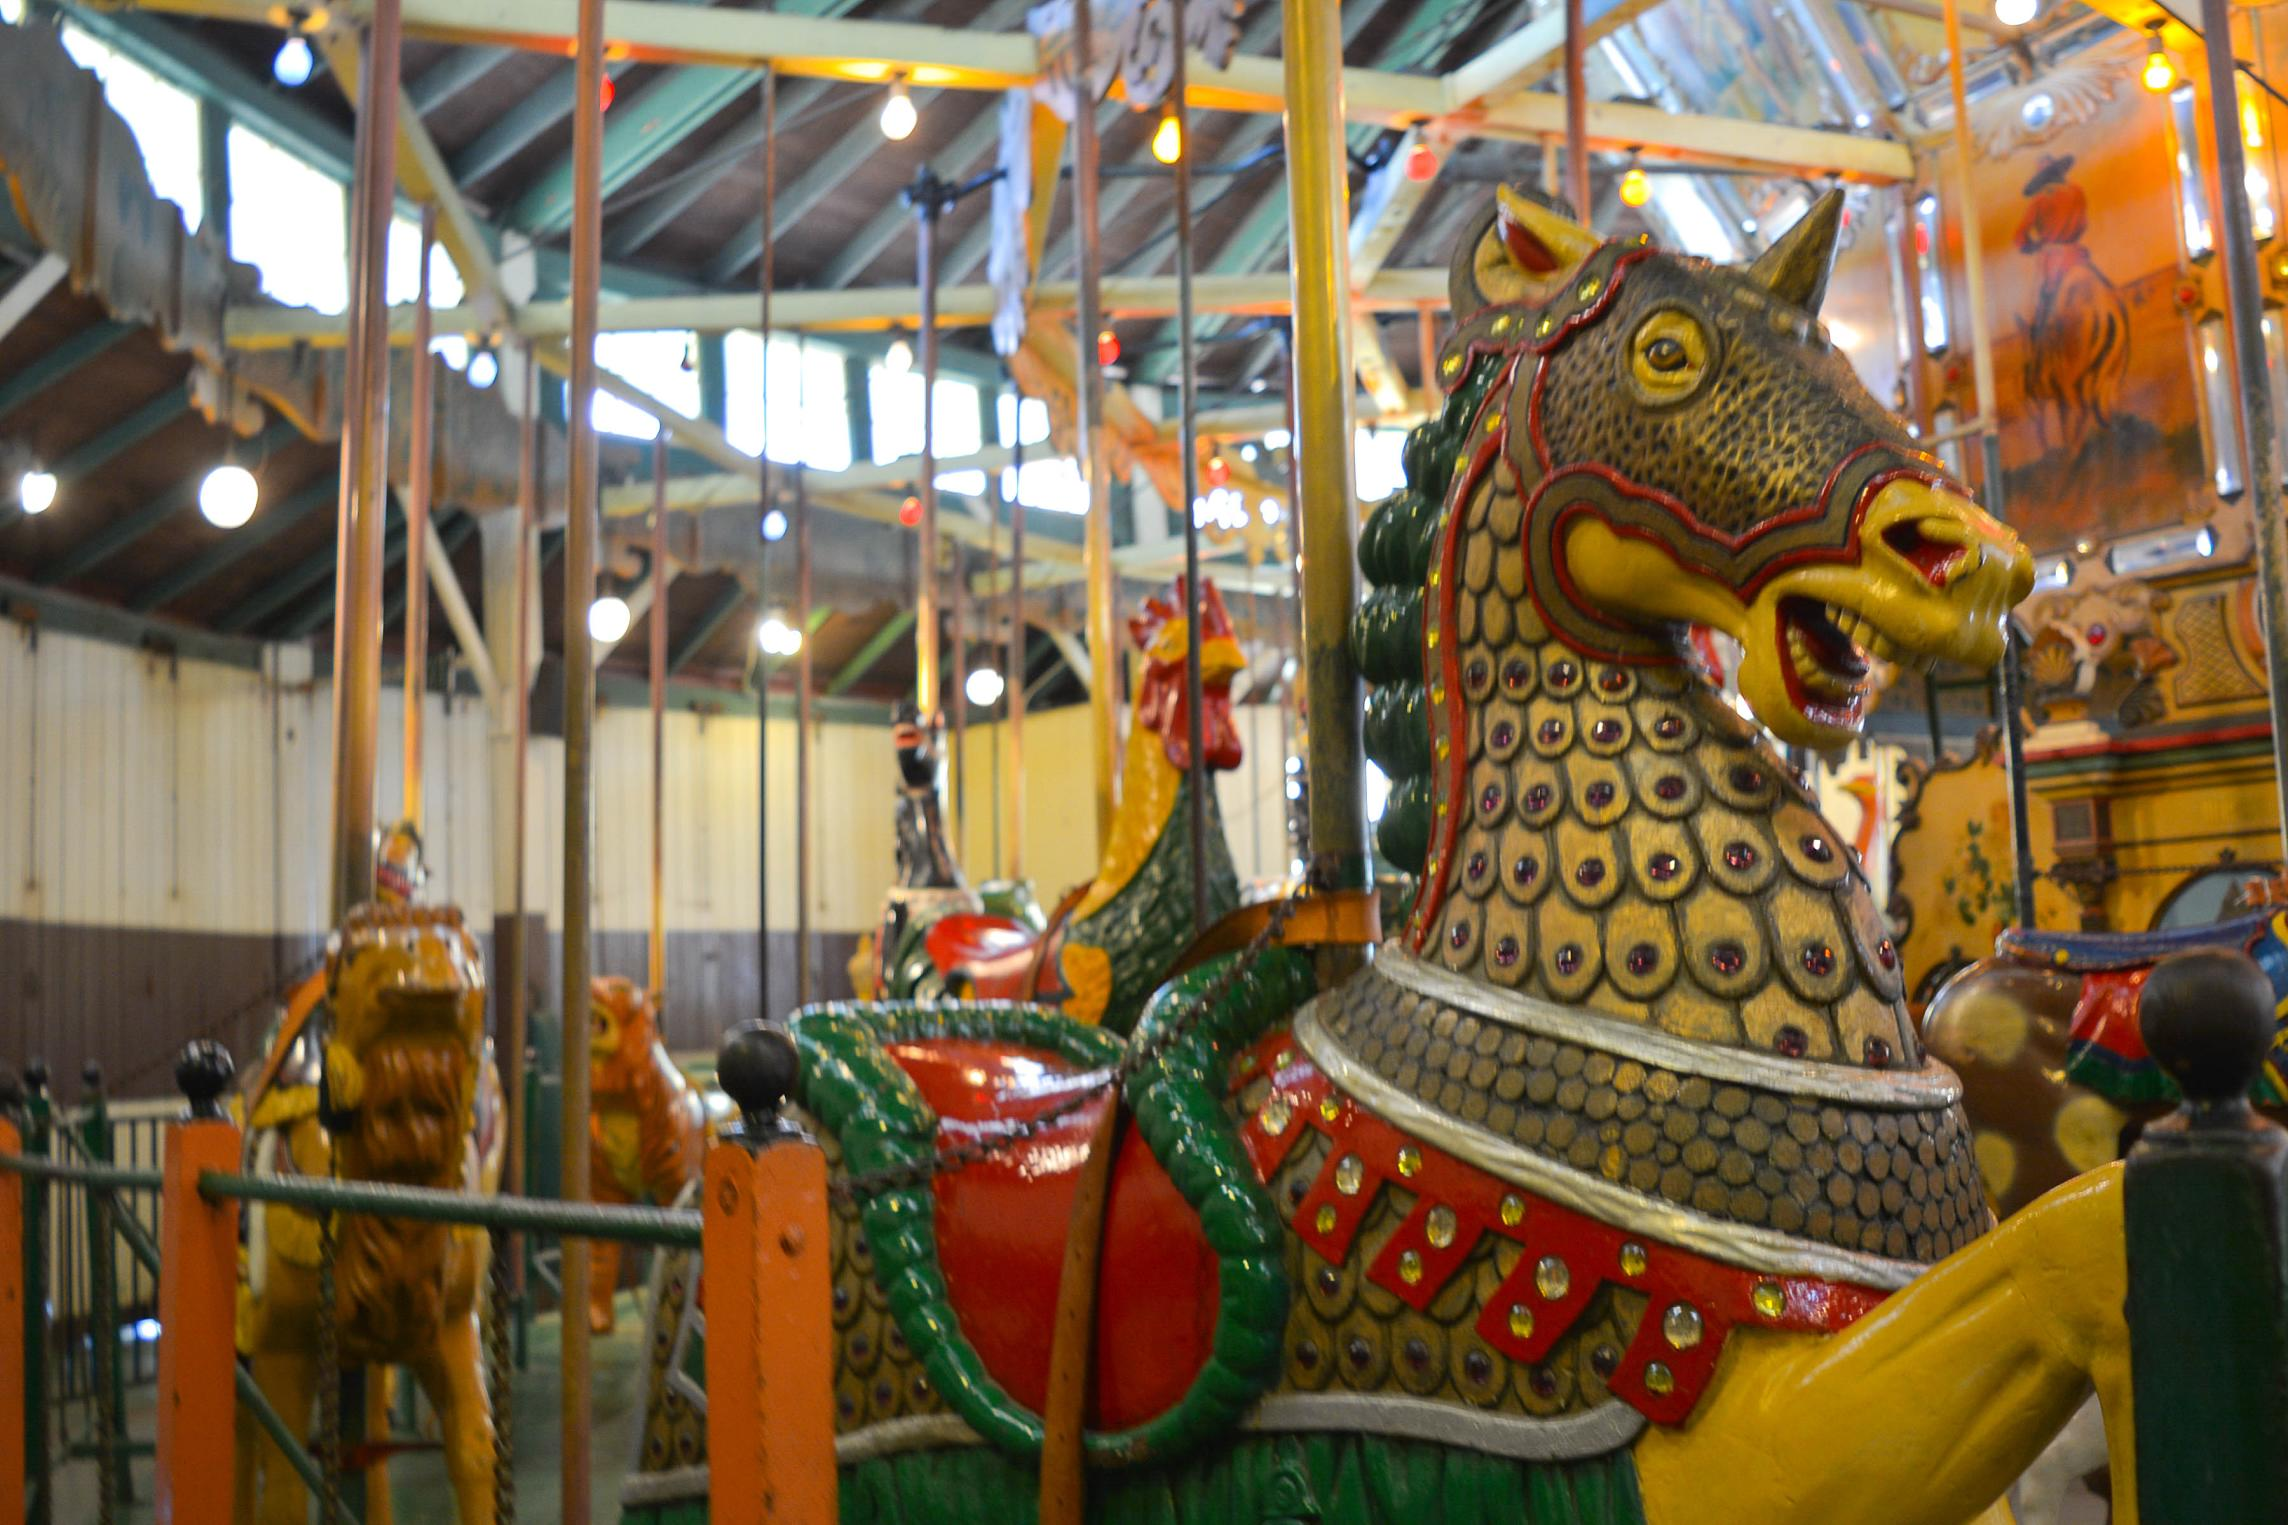 Nonprofit Takes Over Century-Old Carousel in Balboa Park - Times of ...